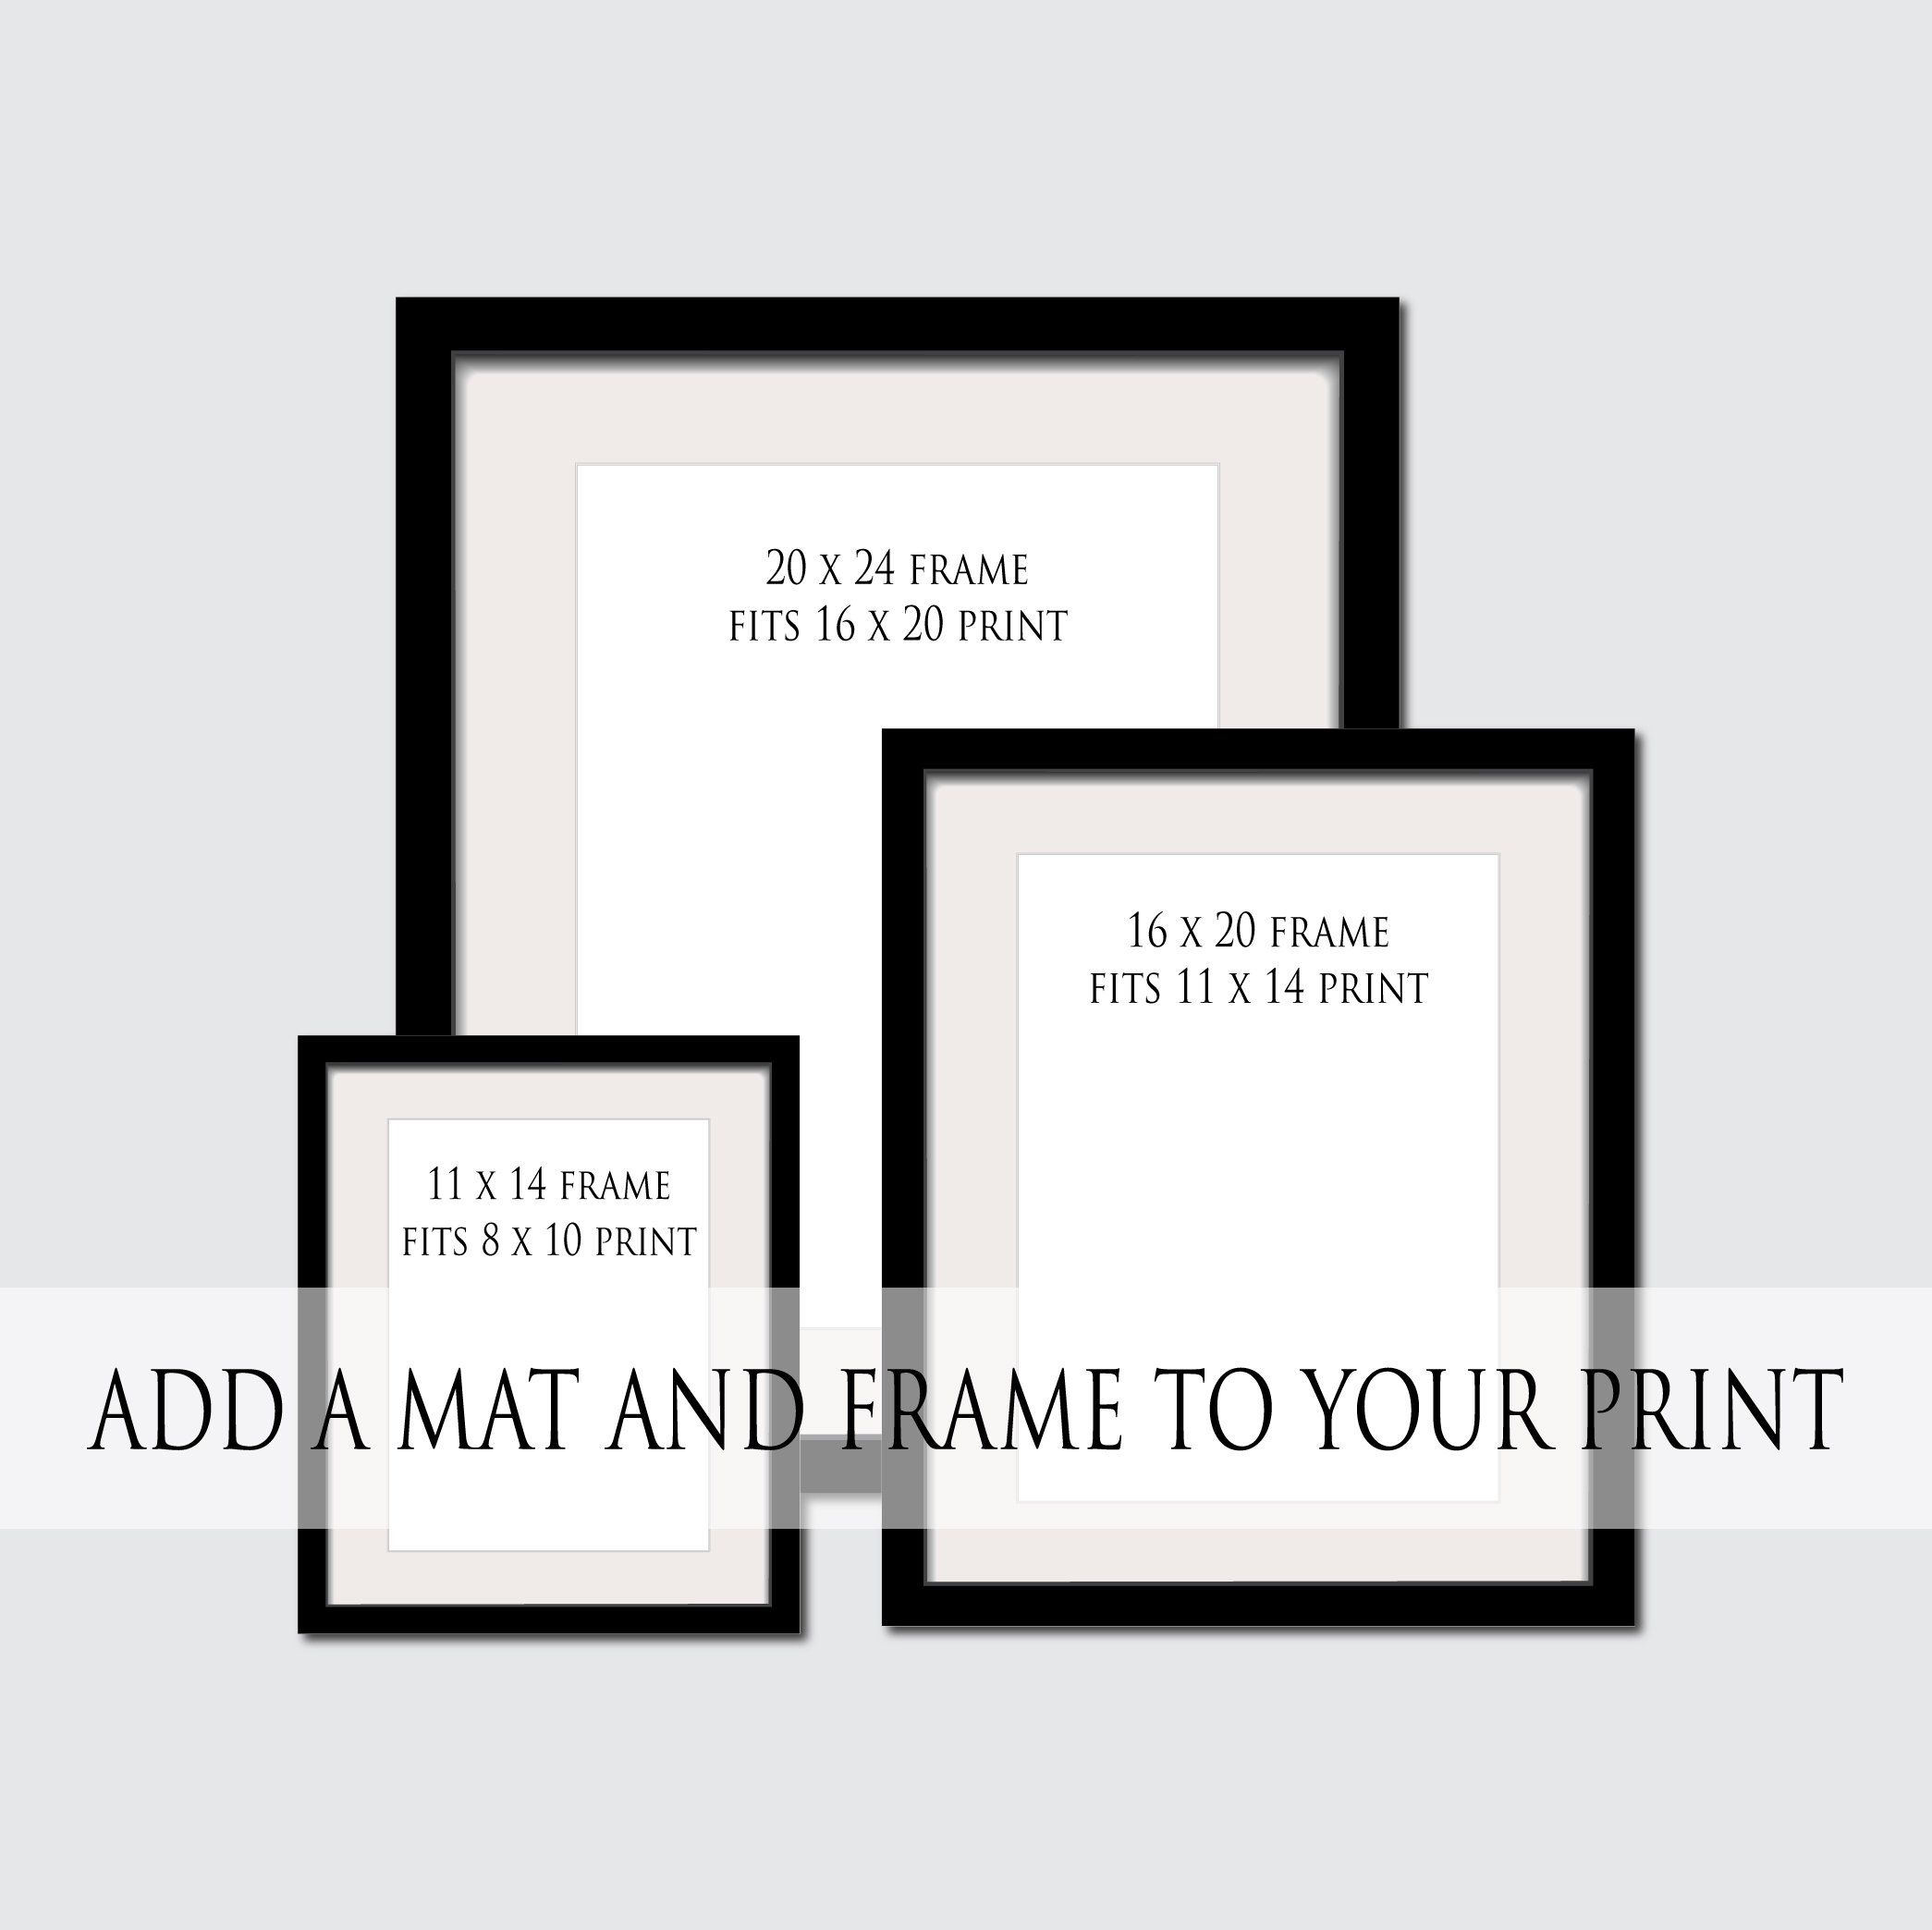 Add A Frame Mat To Any Print Custom Frame Farmhouse Frames 11 X 14 16 X 20 20 X 24 100 Solid Wood Frame Frame And Mat Add On Frame Frame Matting Custom Framing